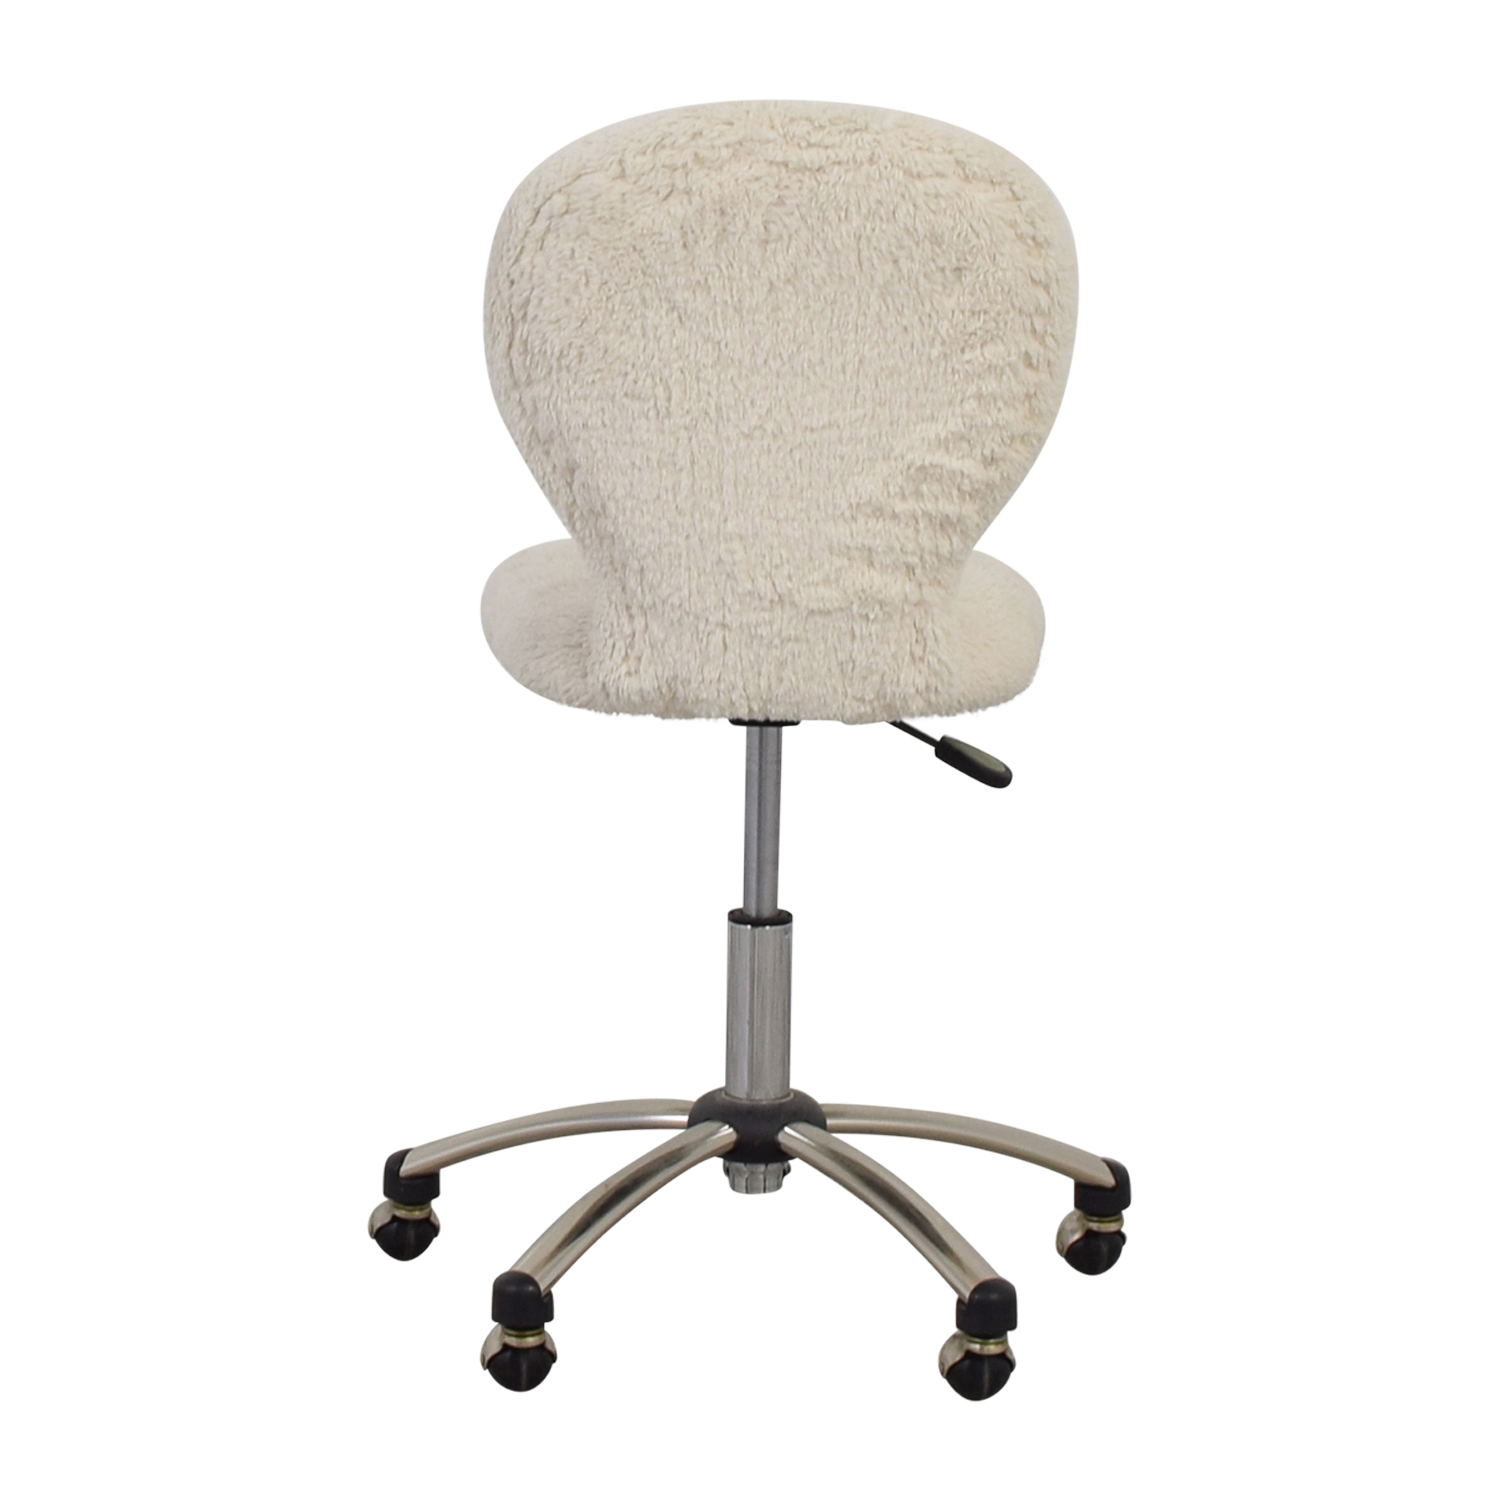 Pottery Barn White Fleece Covered Desk Chair / Accent Chairs